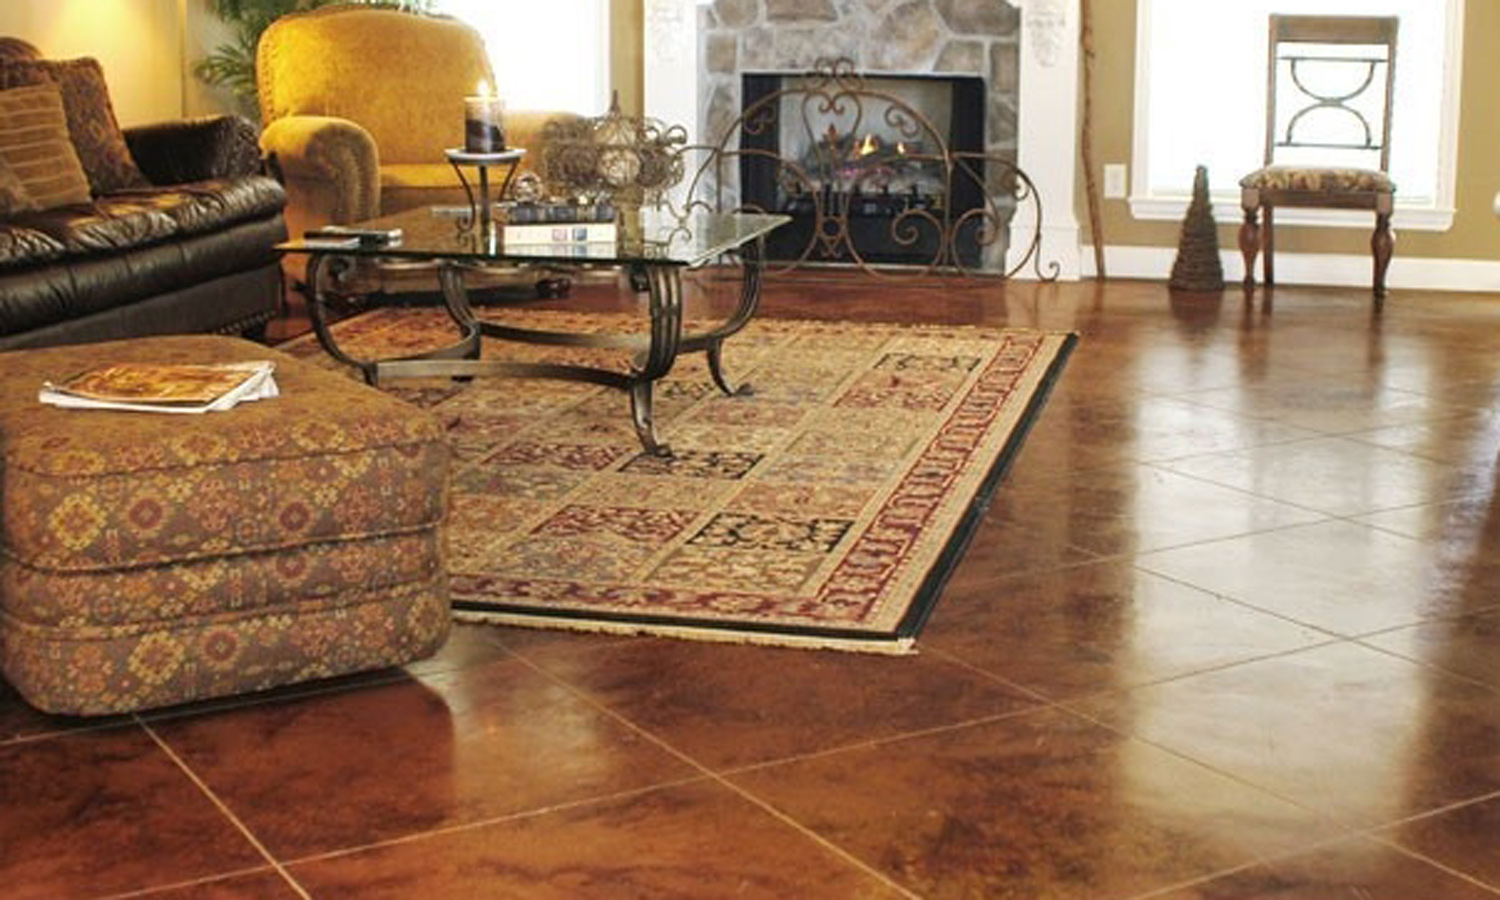 Kr flooring solutions llc in phoenix az dailygadgetfo Image collections